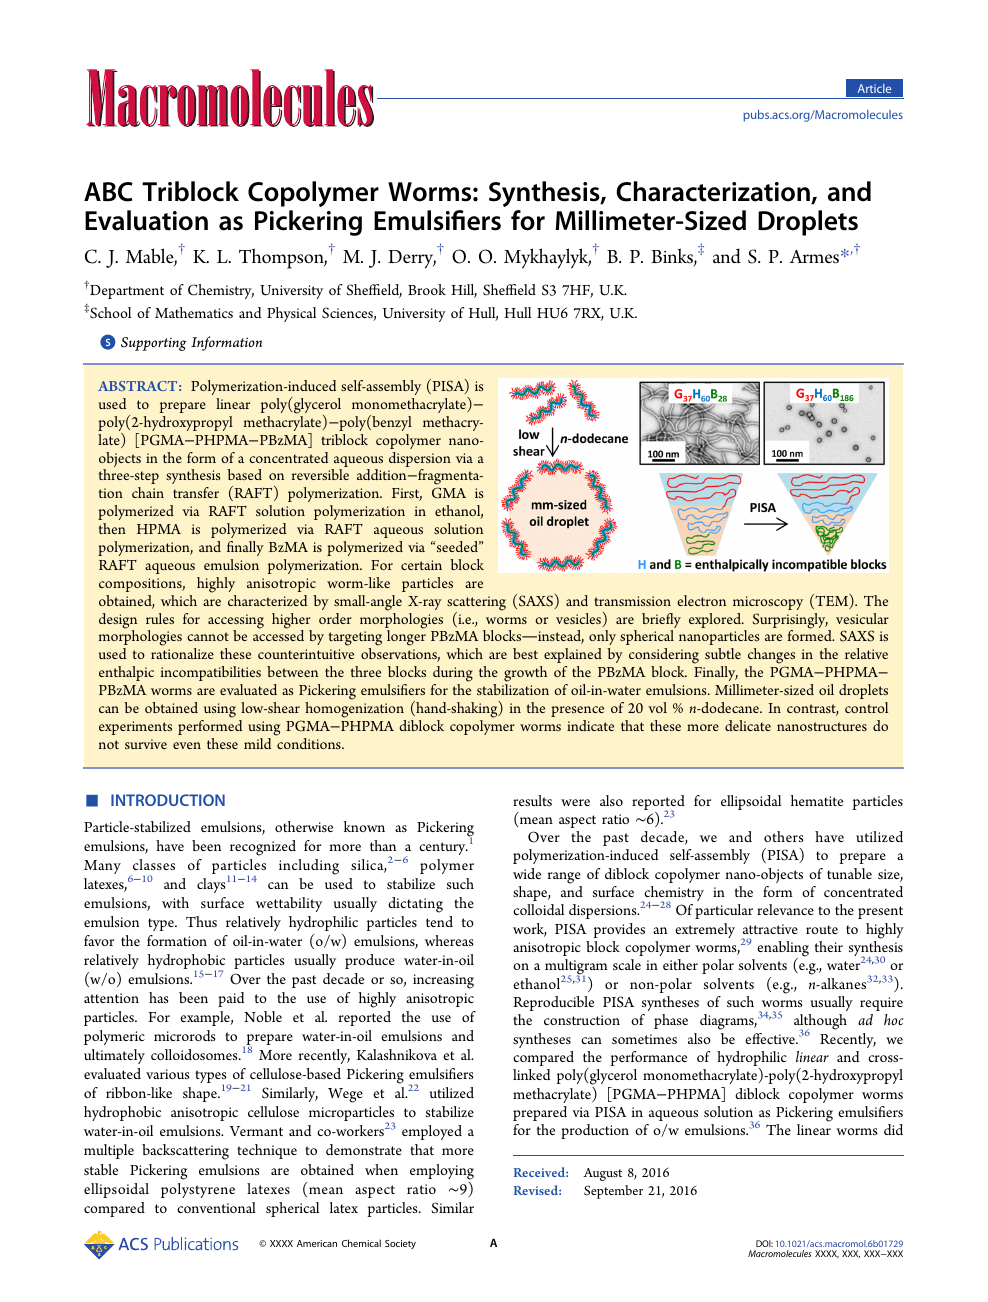 ABC Triblock Copolymer Worms: Synthesis, Characterization